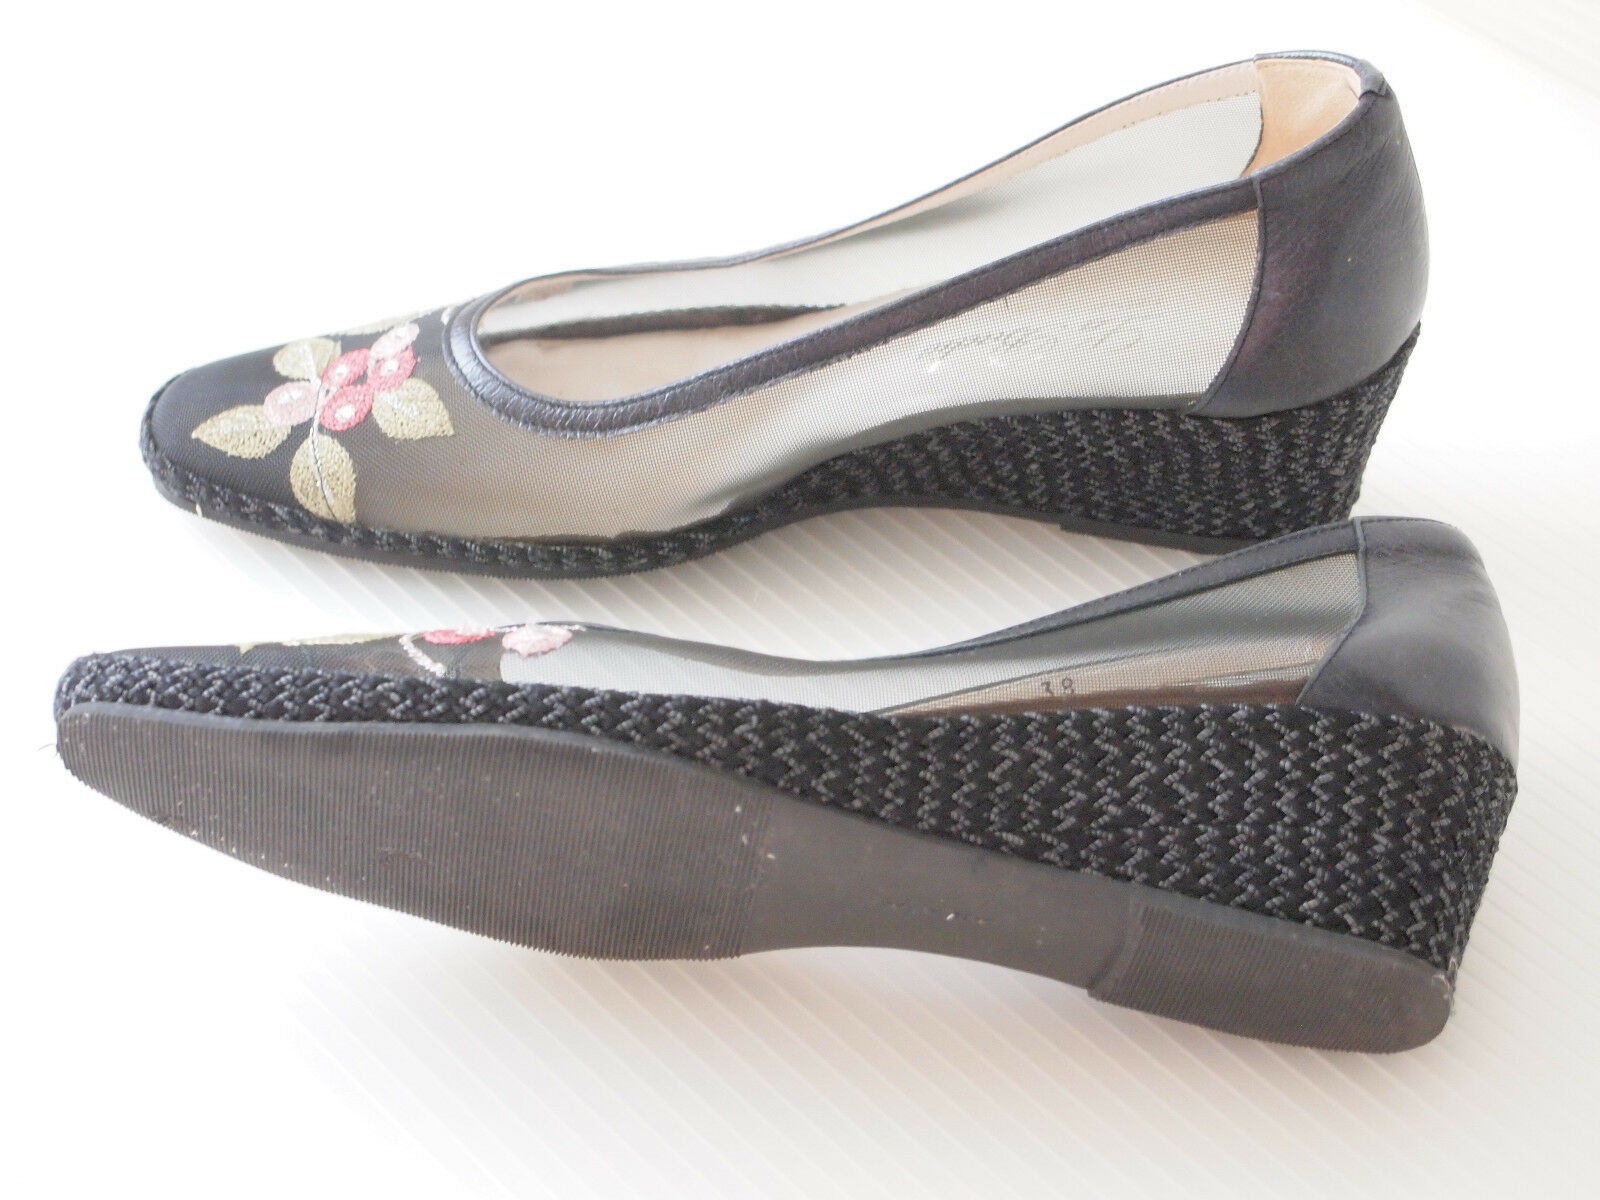 Ladies Shoes La Badia Firenze made in Italy Leather/ Platform Synthetic/ Platform Leather/ Wedge/ 93f5fa